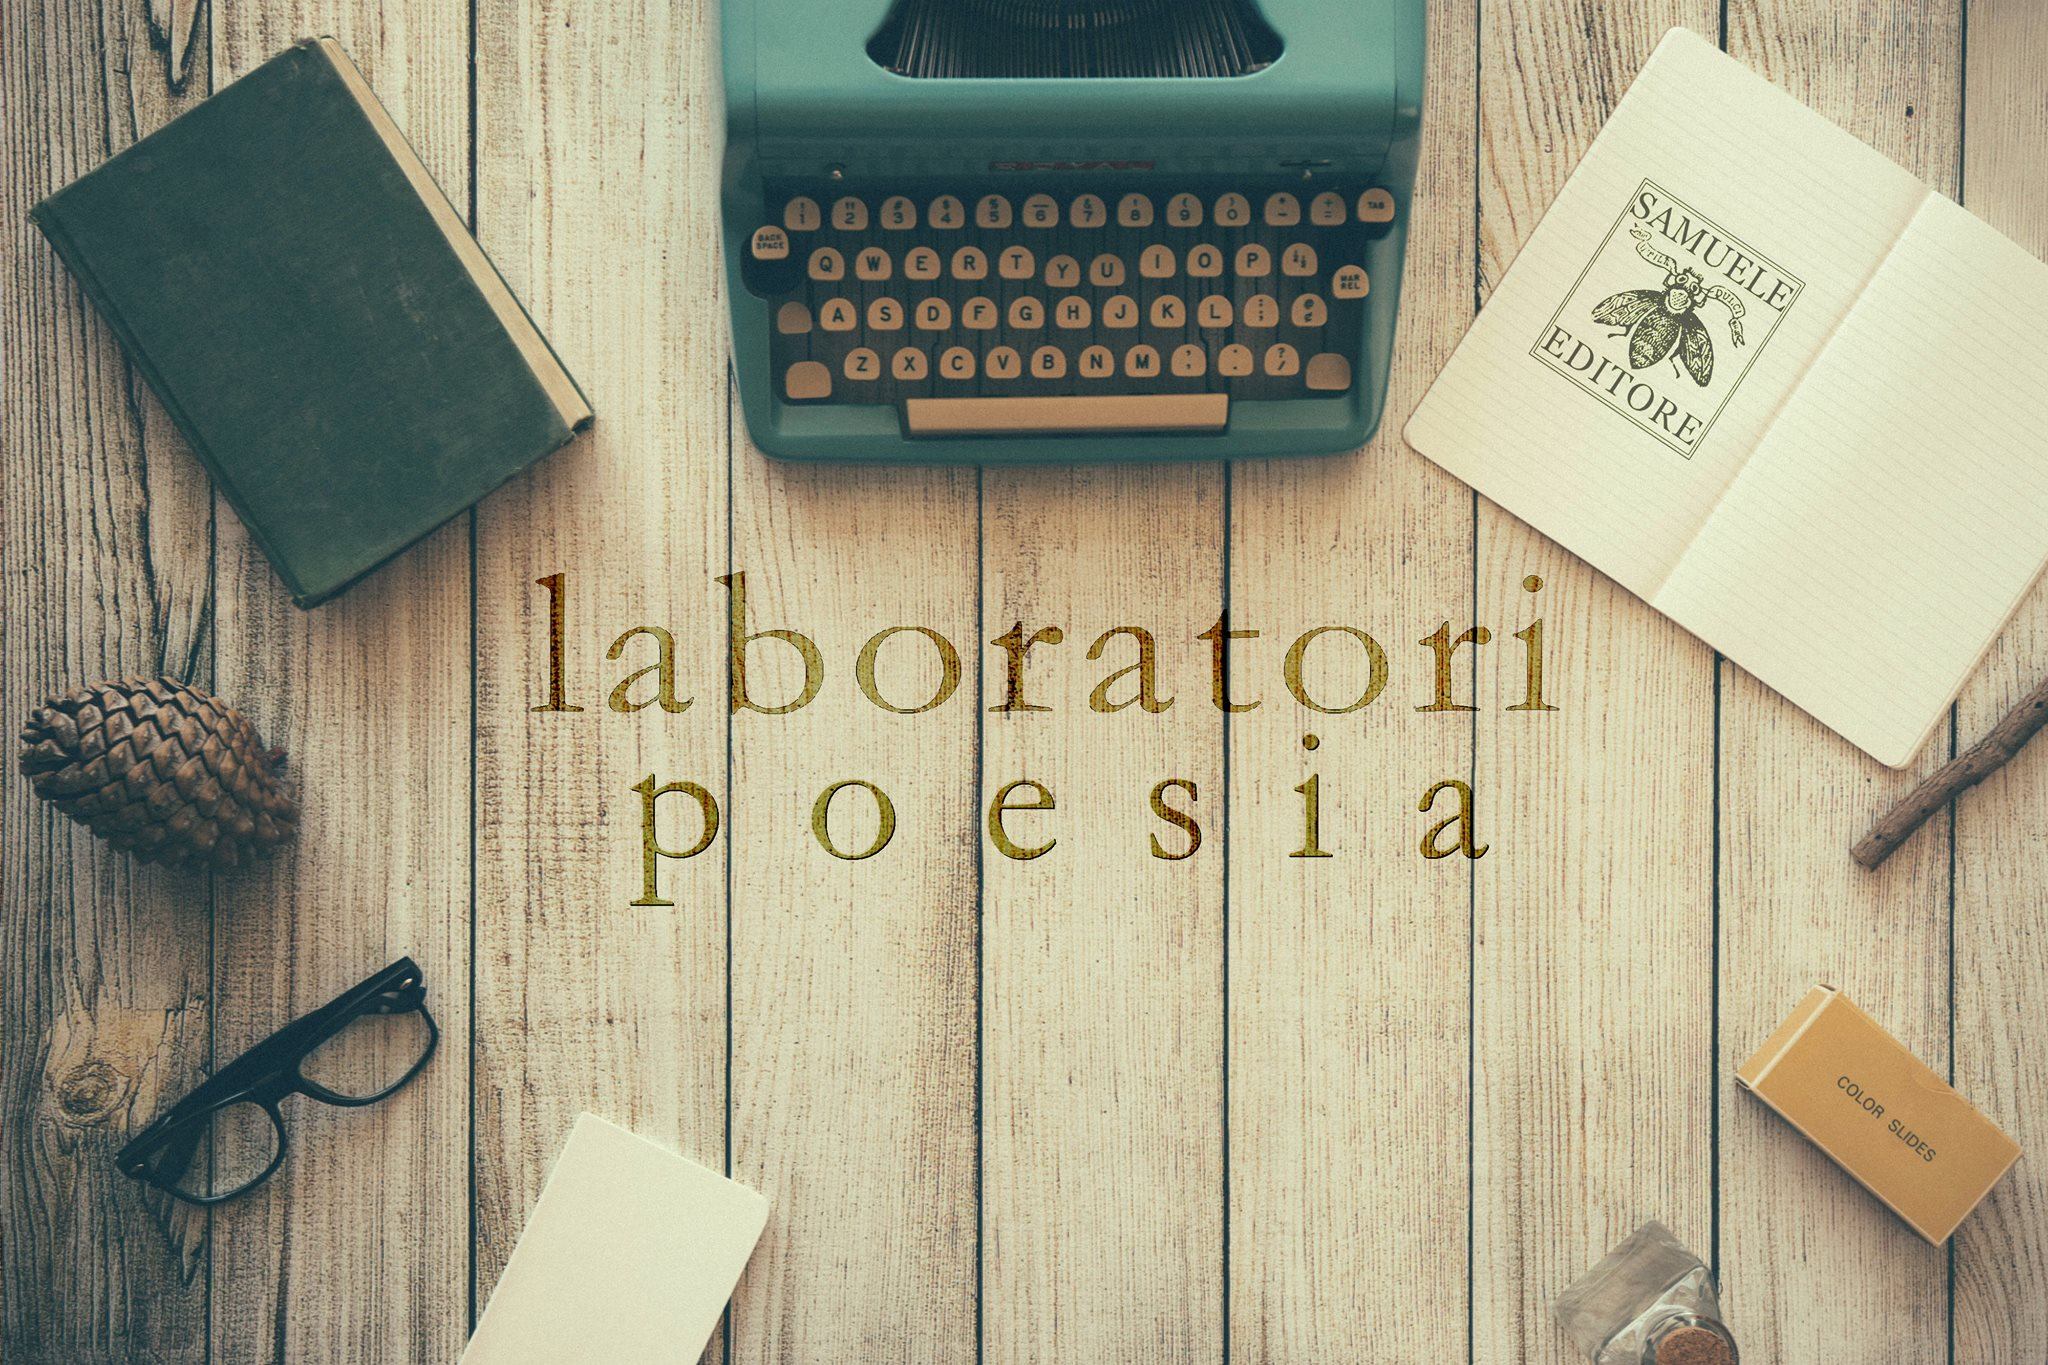 laboratoridipoesia